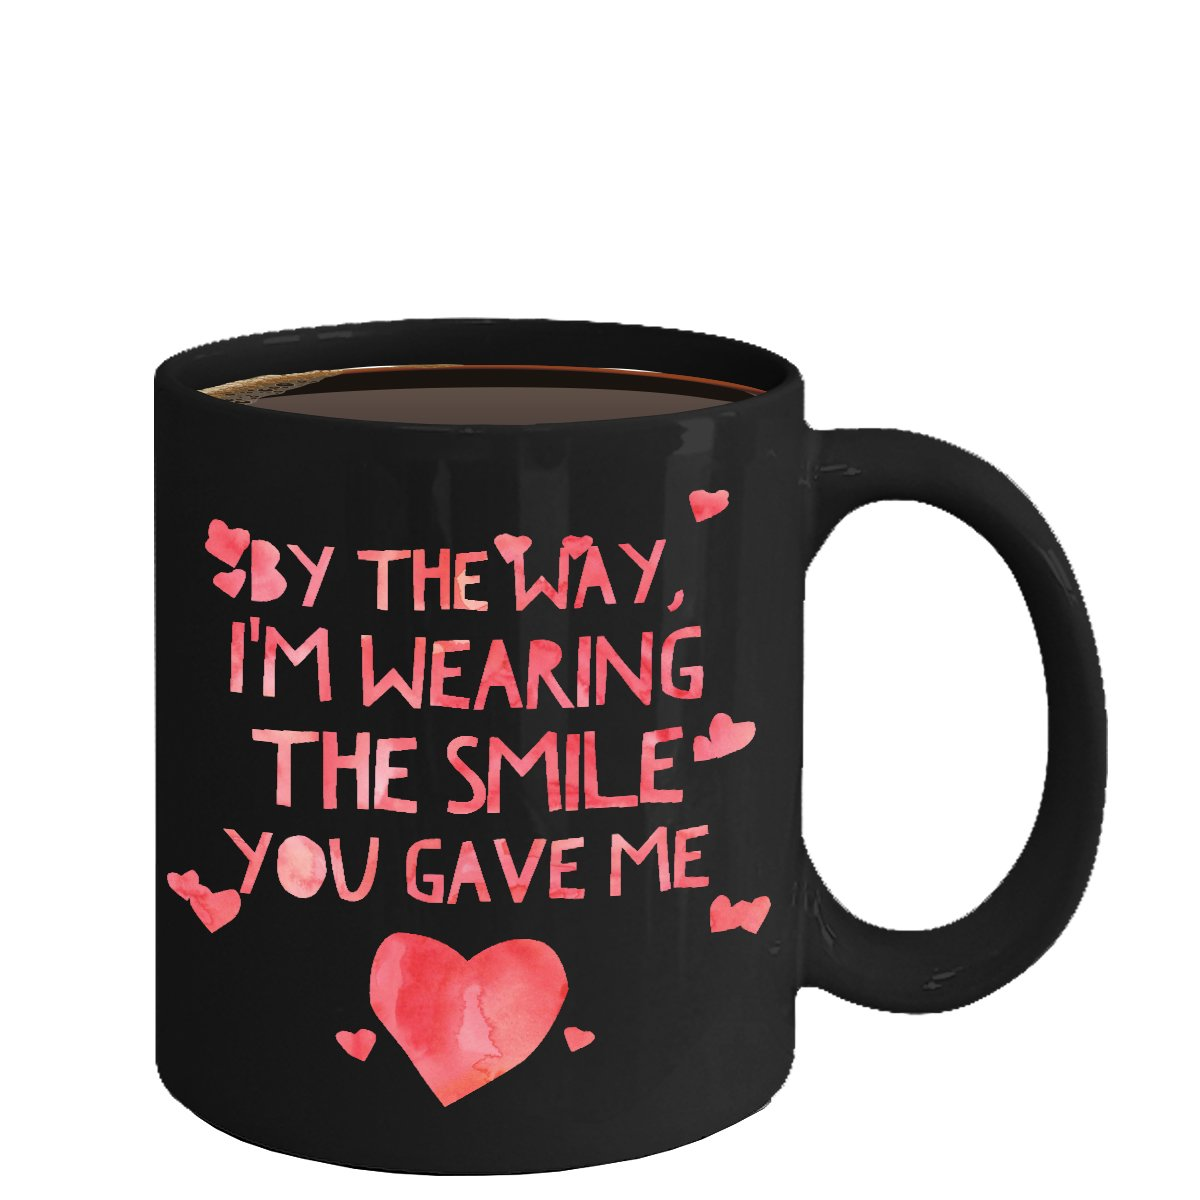 Love Ceramic Coffee Mug - The Smile You Gave Me - Cute Large Cup (Black) - Best Gift for Men, Women